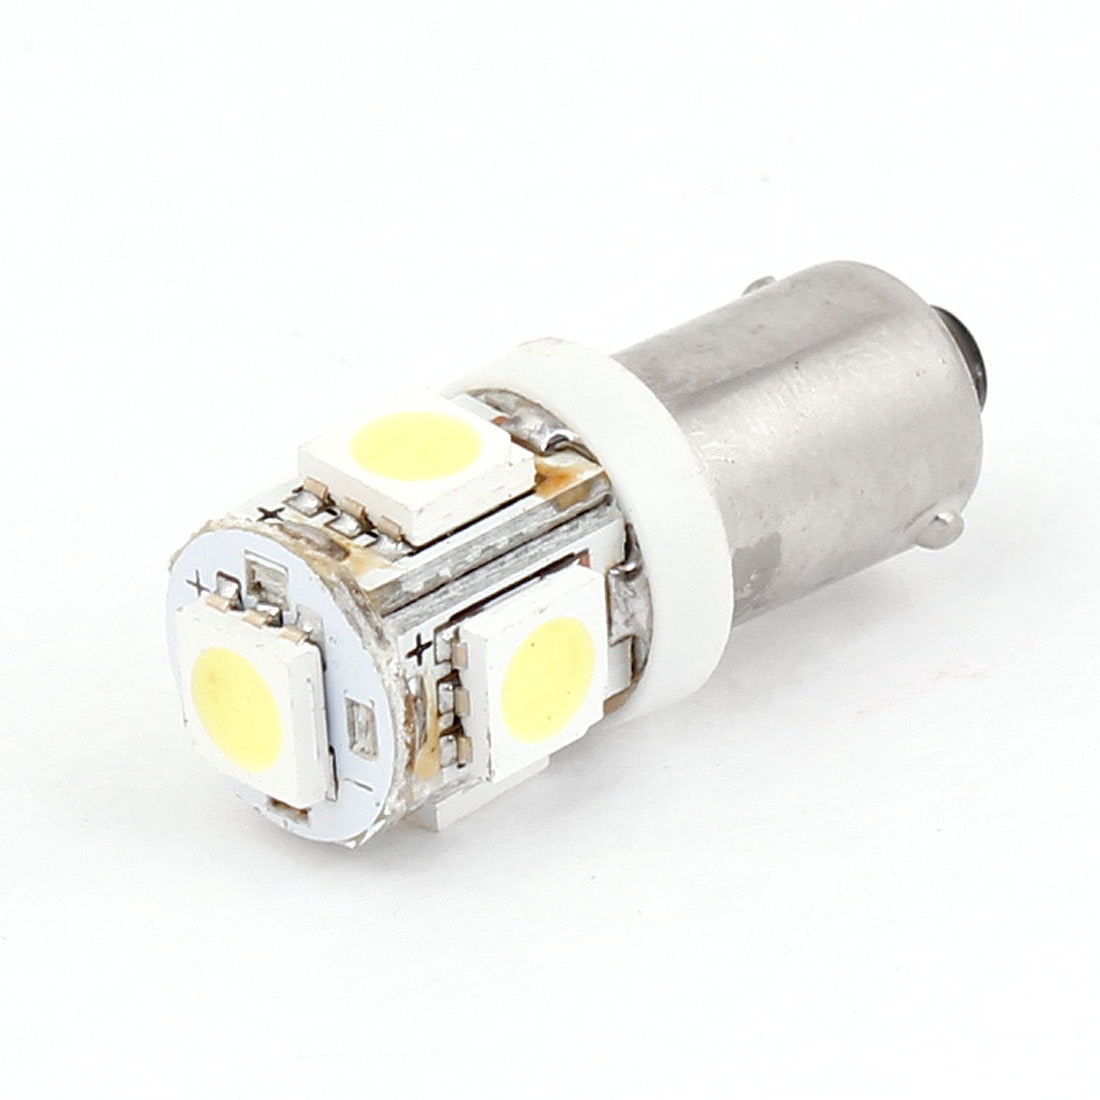 Auto Car BA9S H5W White 5 LED 5050 SMD Turn Tail Back Up Light Bulb